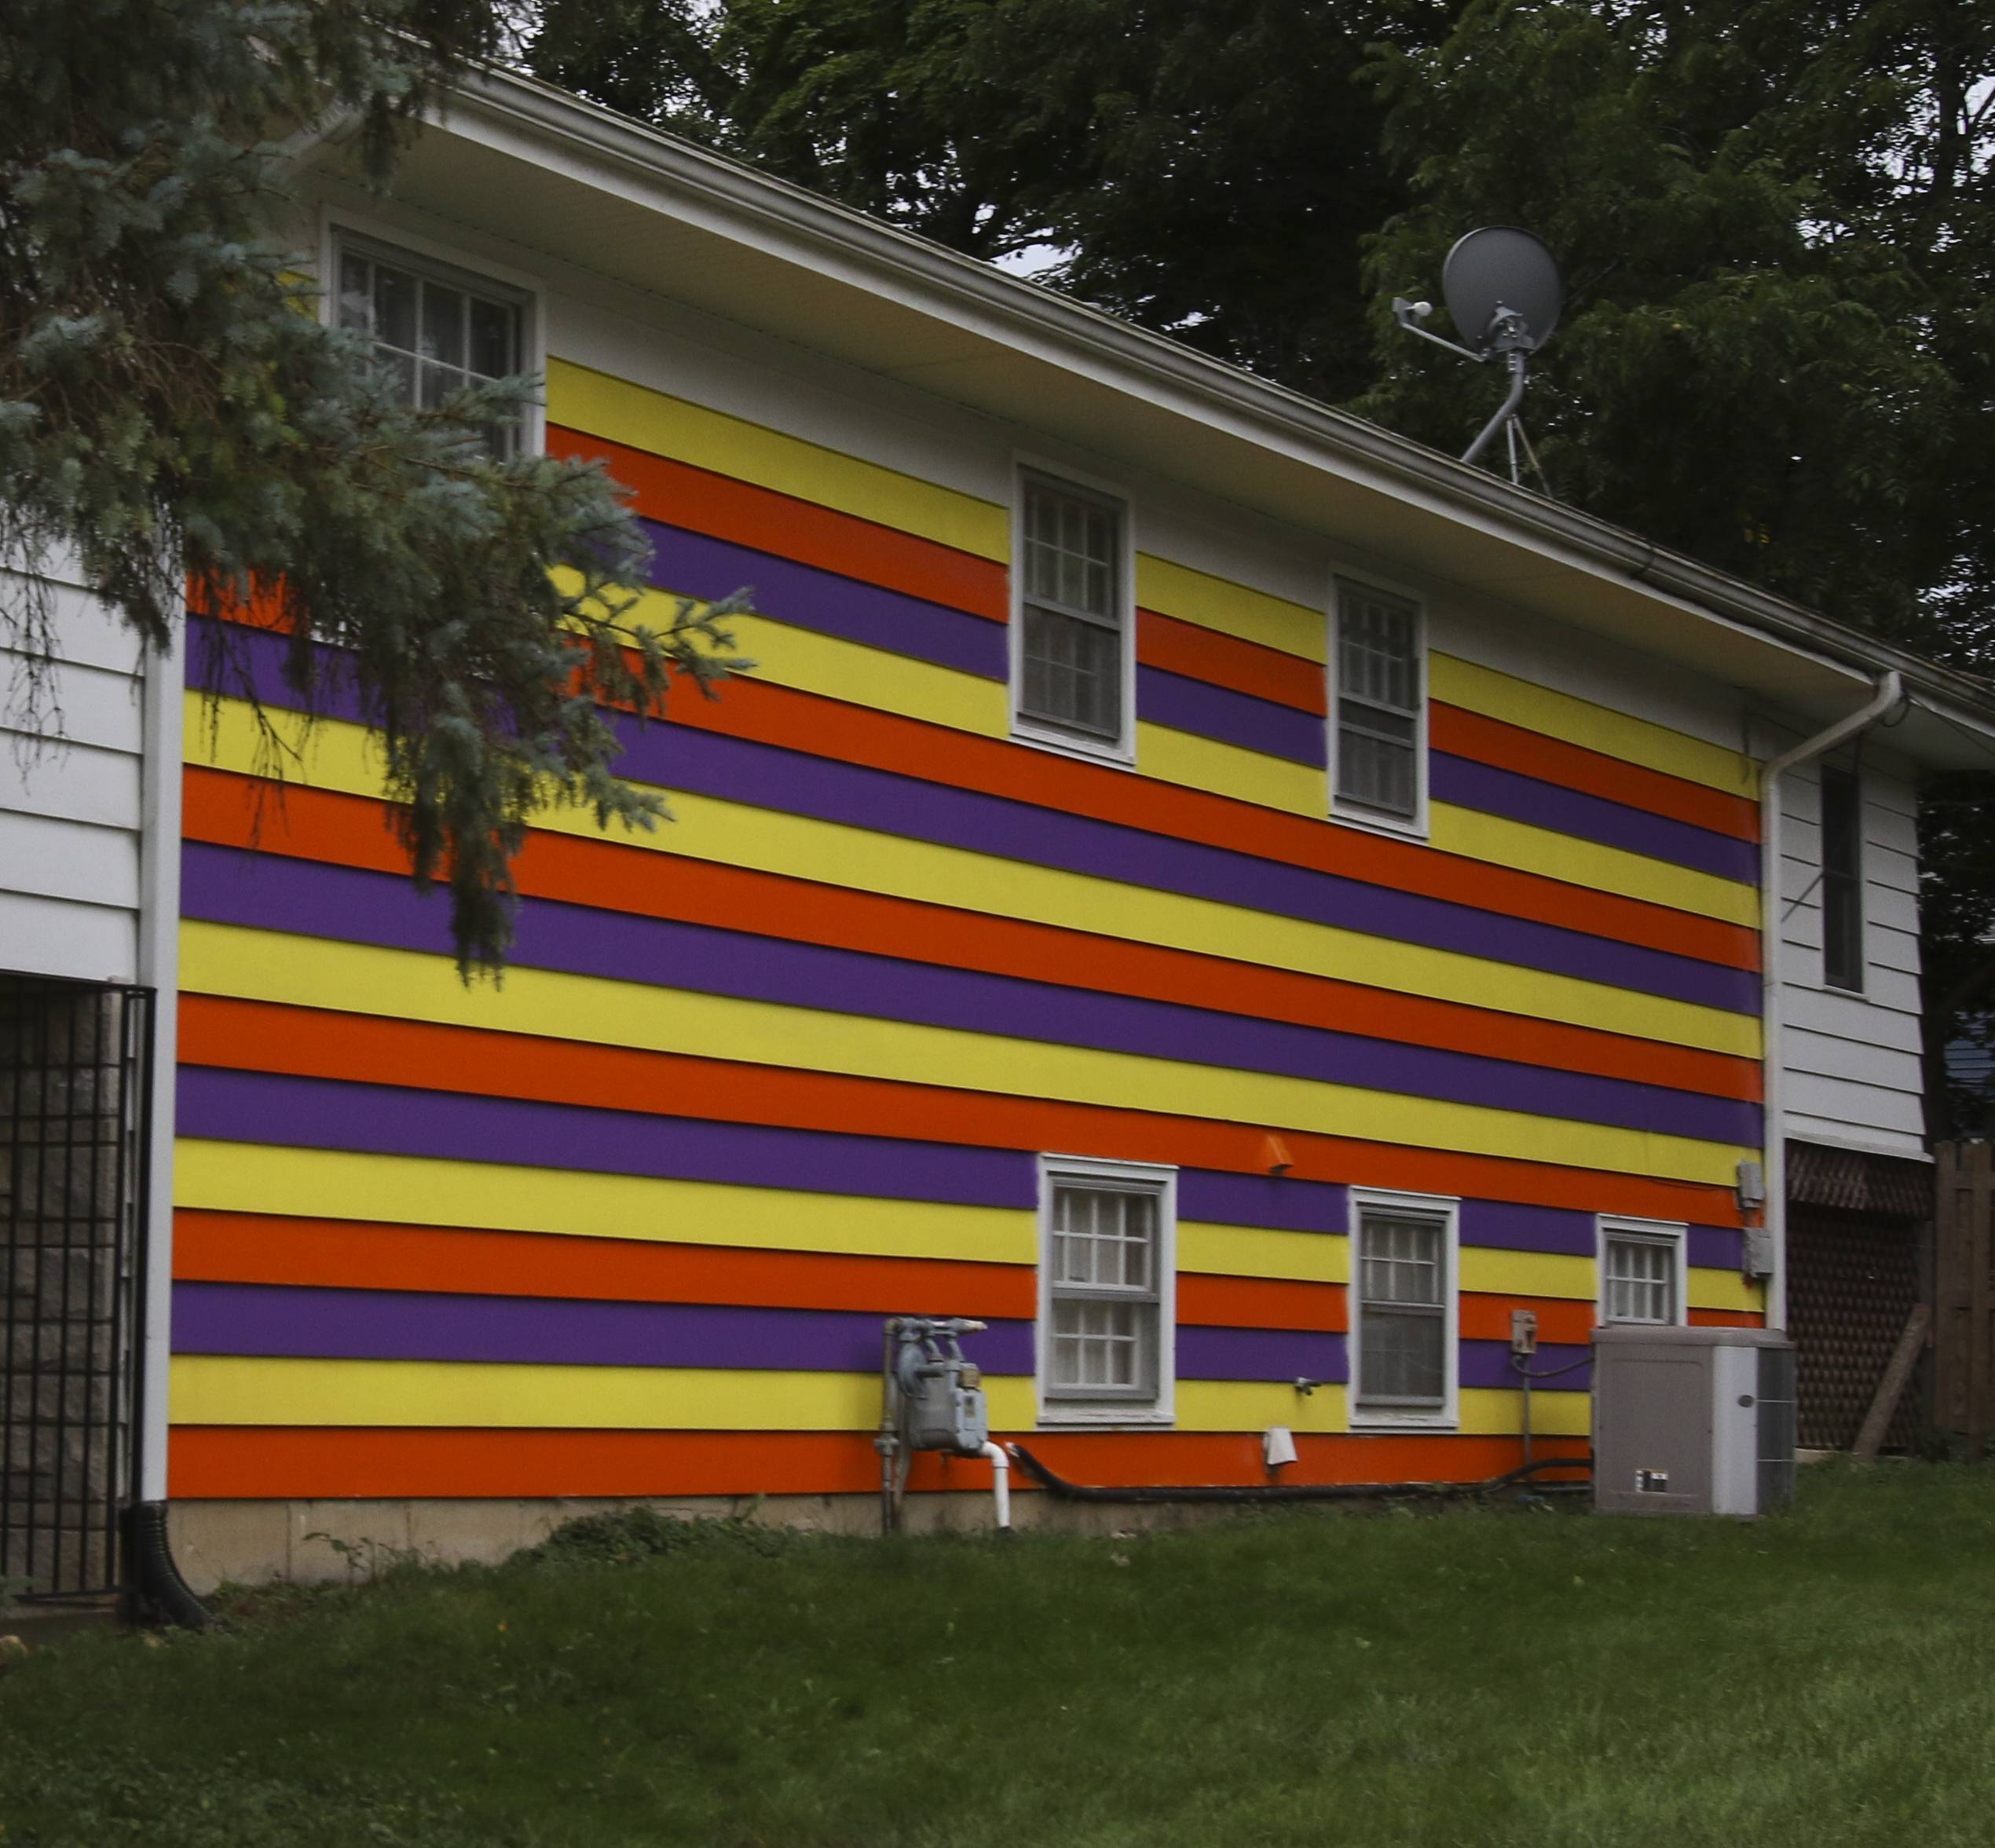 """It's kind of got to a boiling point,"" Denise Harrington said about a dispute in a Glen Ellyn neighborhood that prompted residents of this house to put up this colorful paint job."